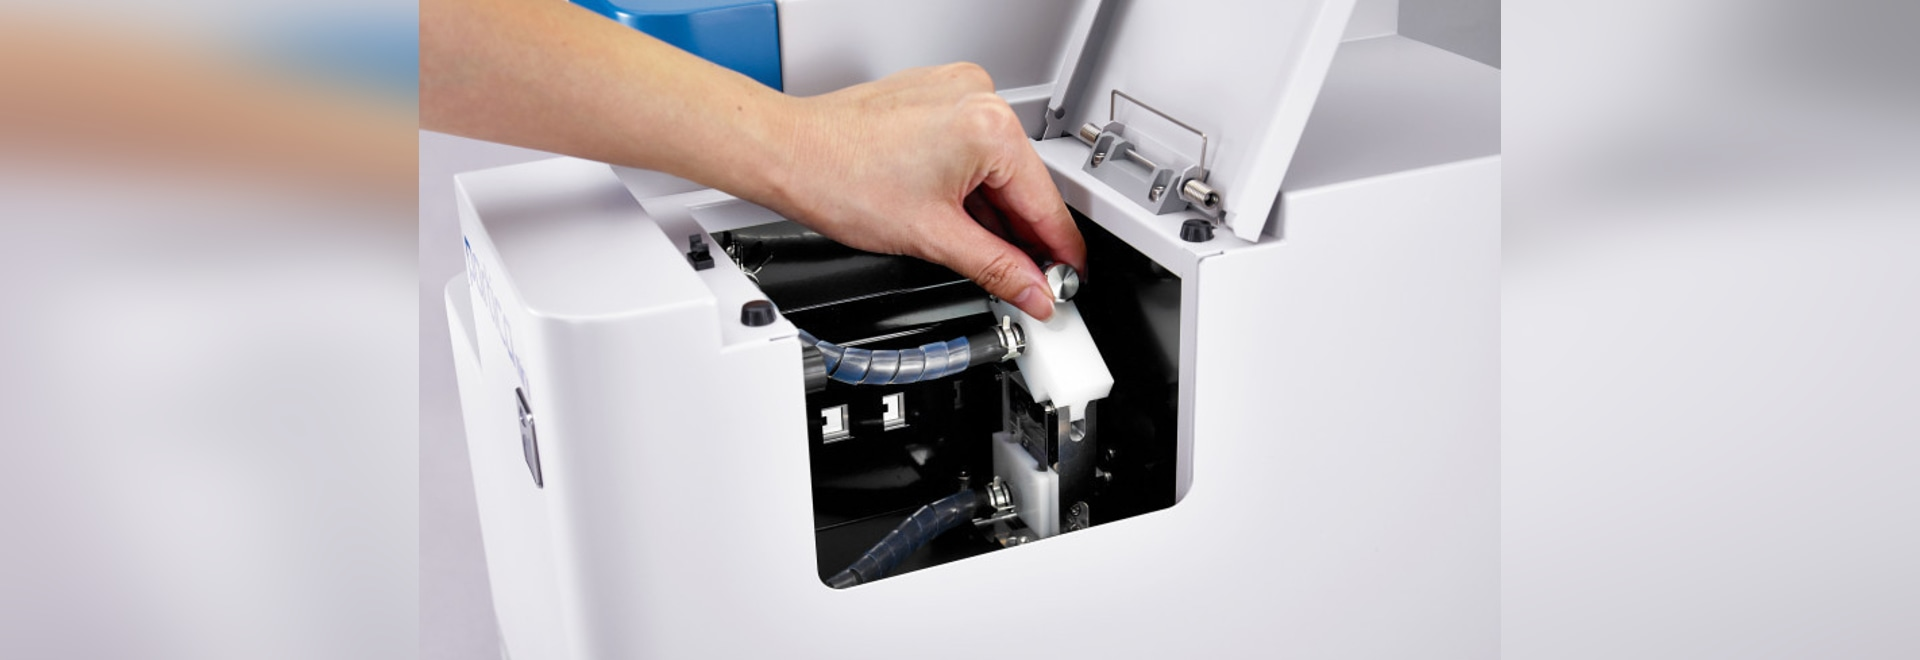 Powerful Particle Size Analyser the Size of a Sheet of Paper